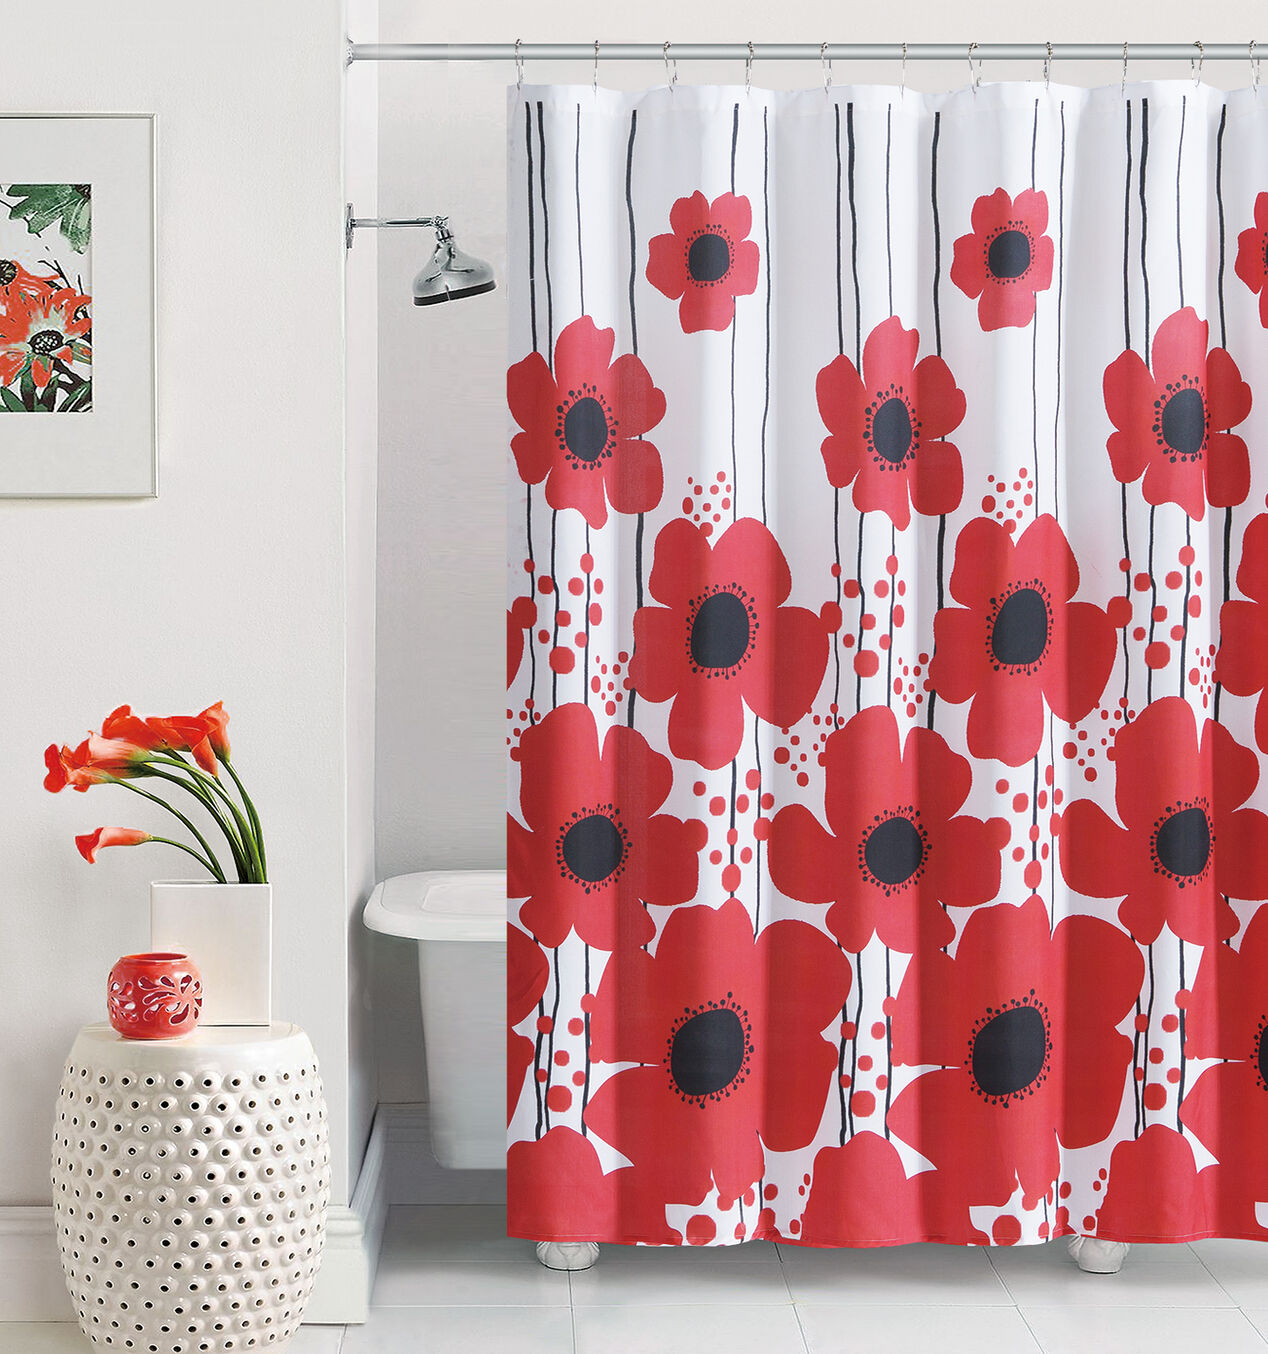 Red shower curtain - Red Poppy Shower Curtain